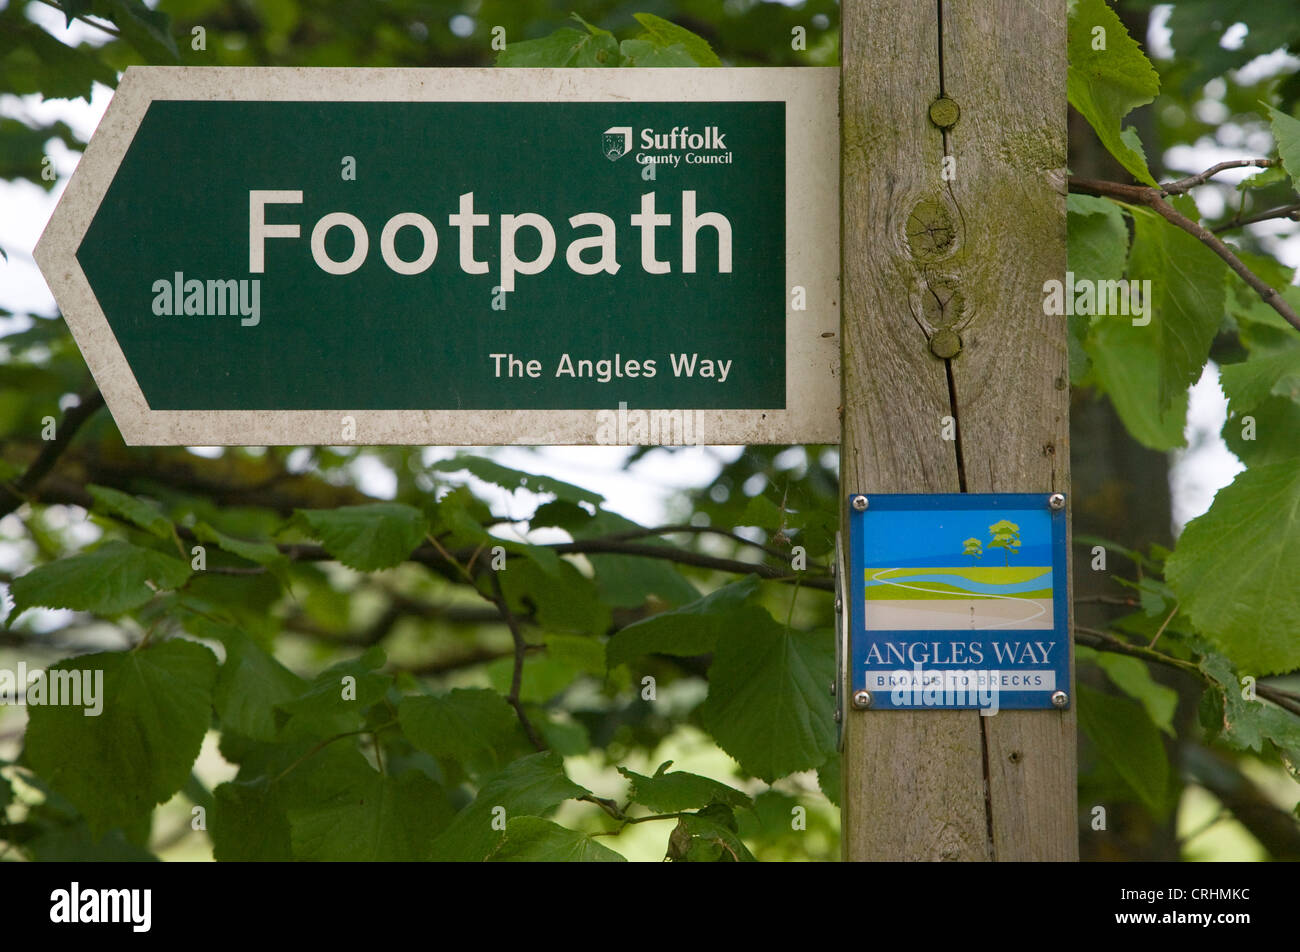 Angles Way footpath sign signpost Suffolk England - Stock Image